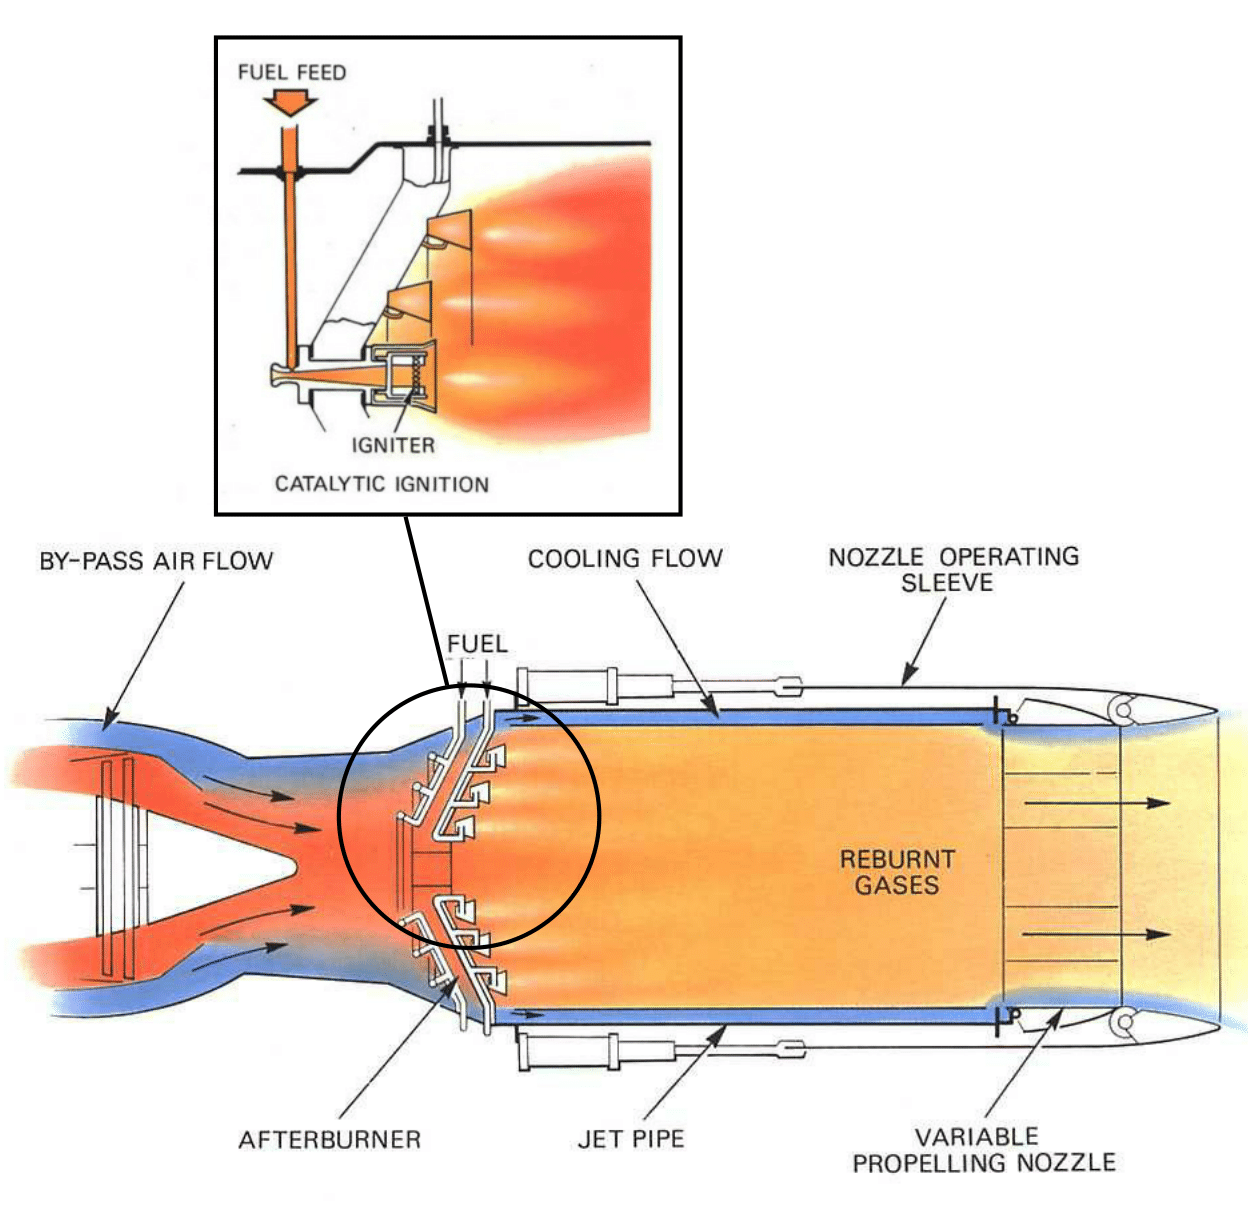 hight resolution of jet engine design afterburning aerospace engineering blog rh aerospaceengineeringblog com ge jet engine diagram diagram of